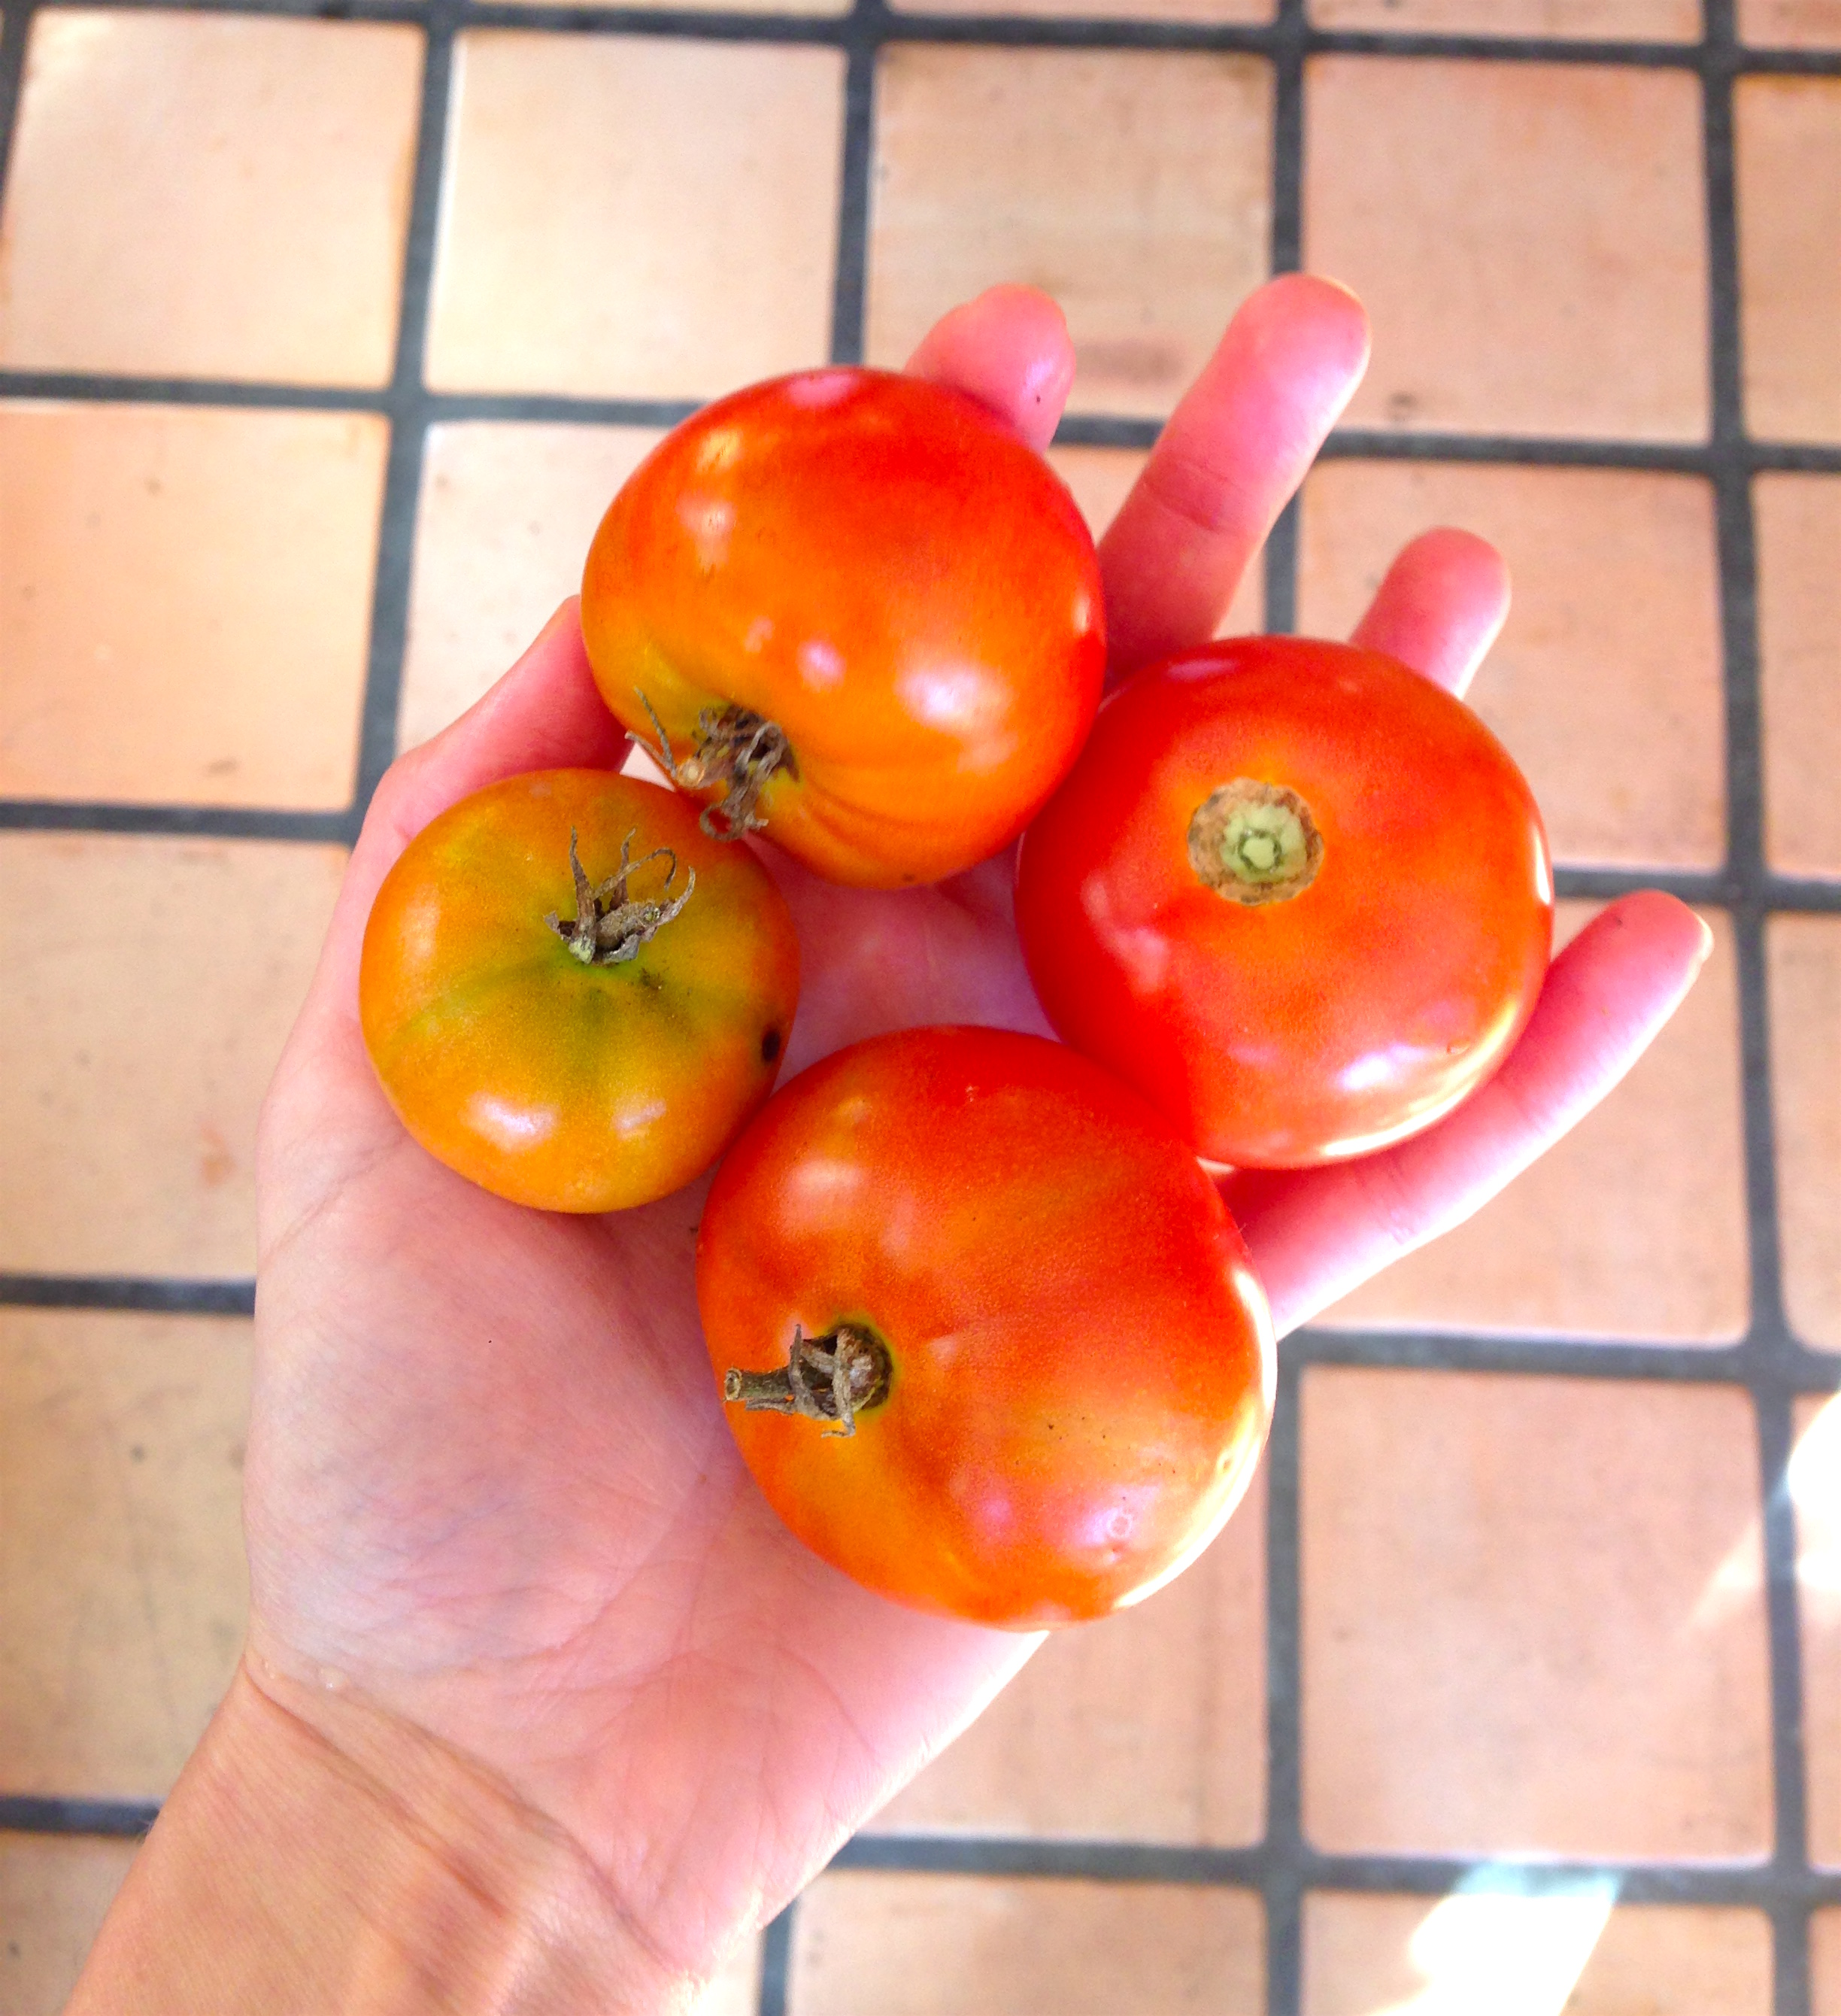 4 of our 8 tomatoes...